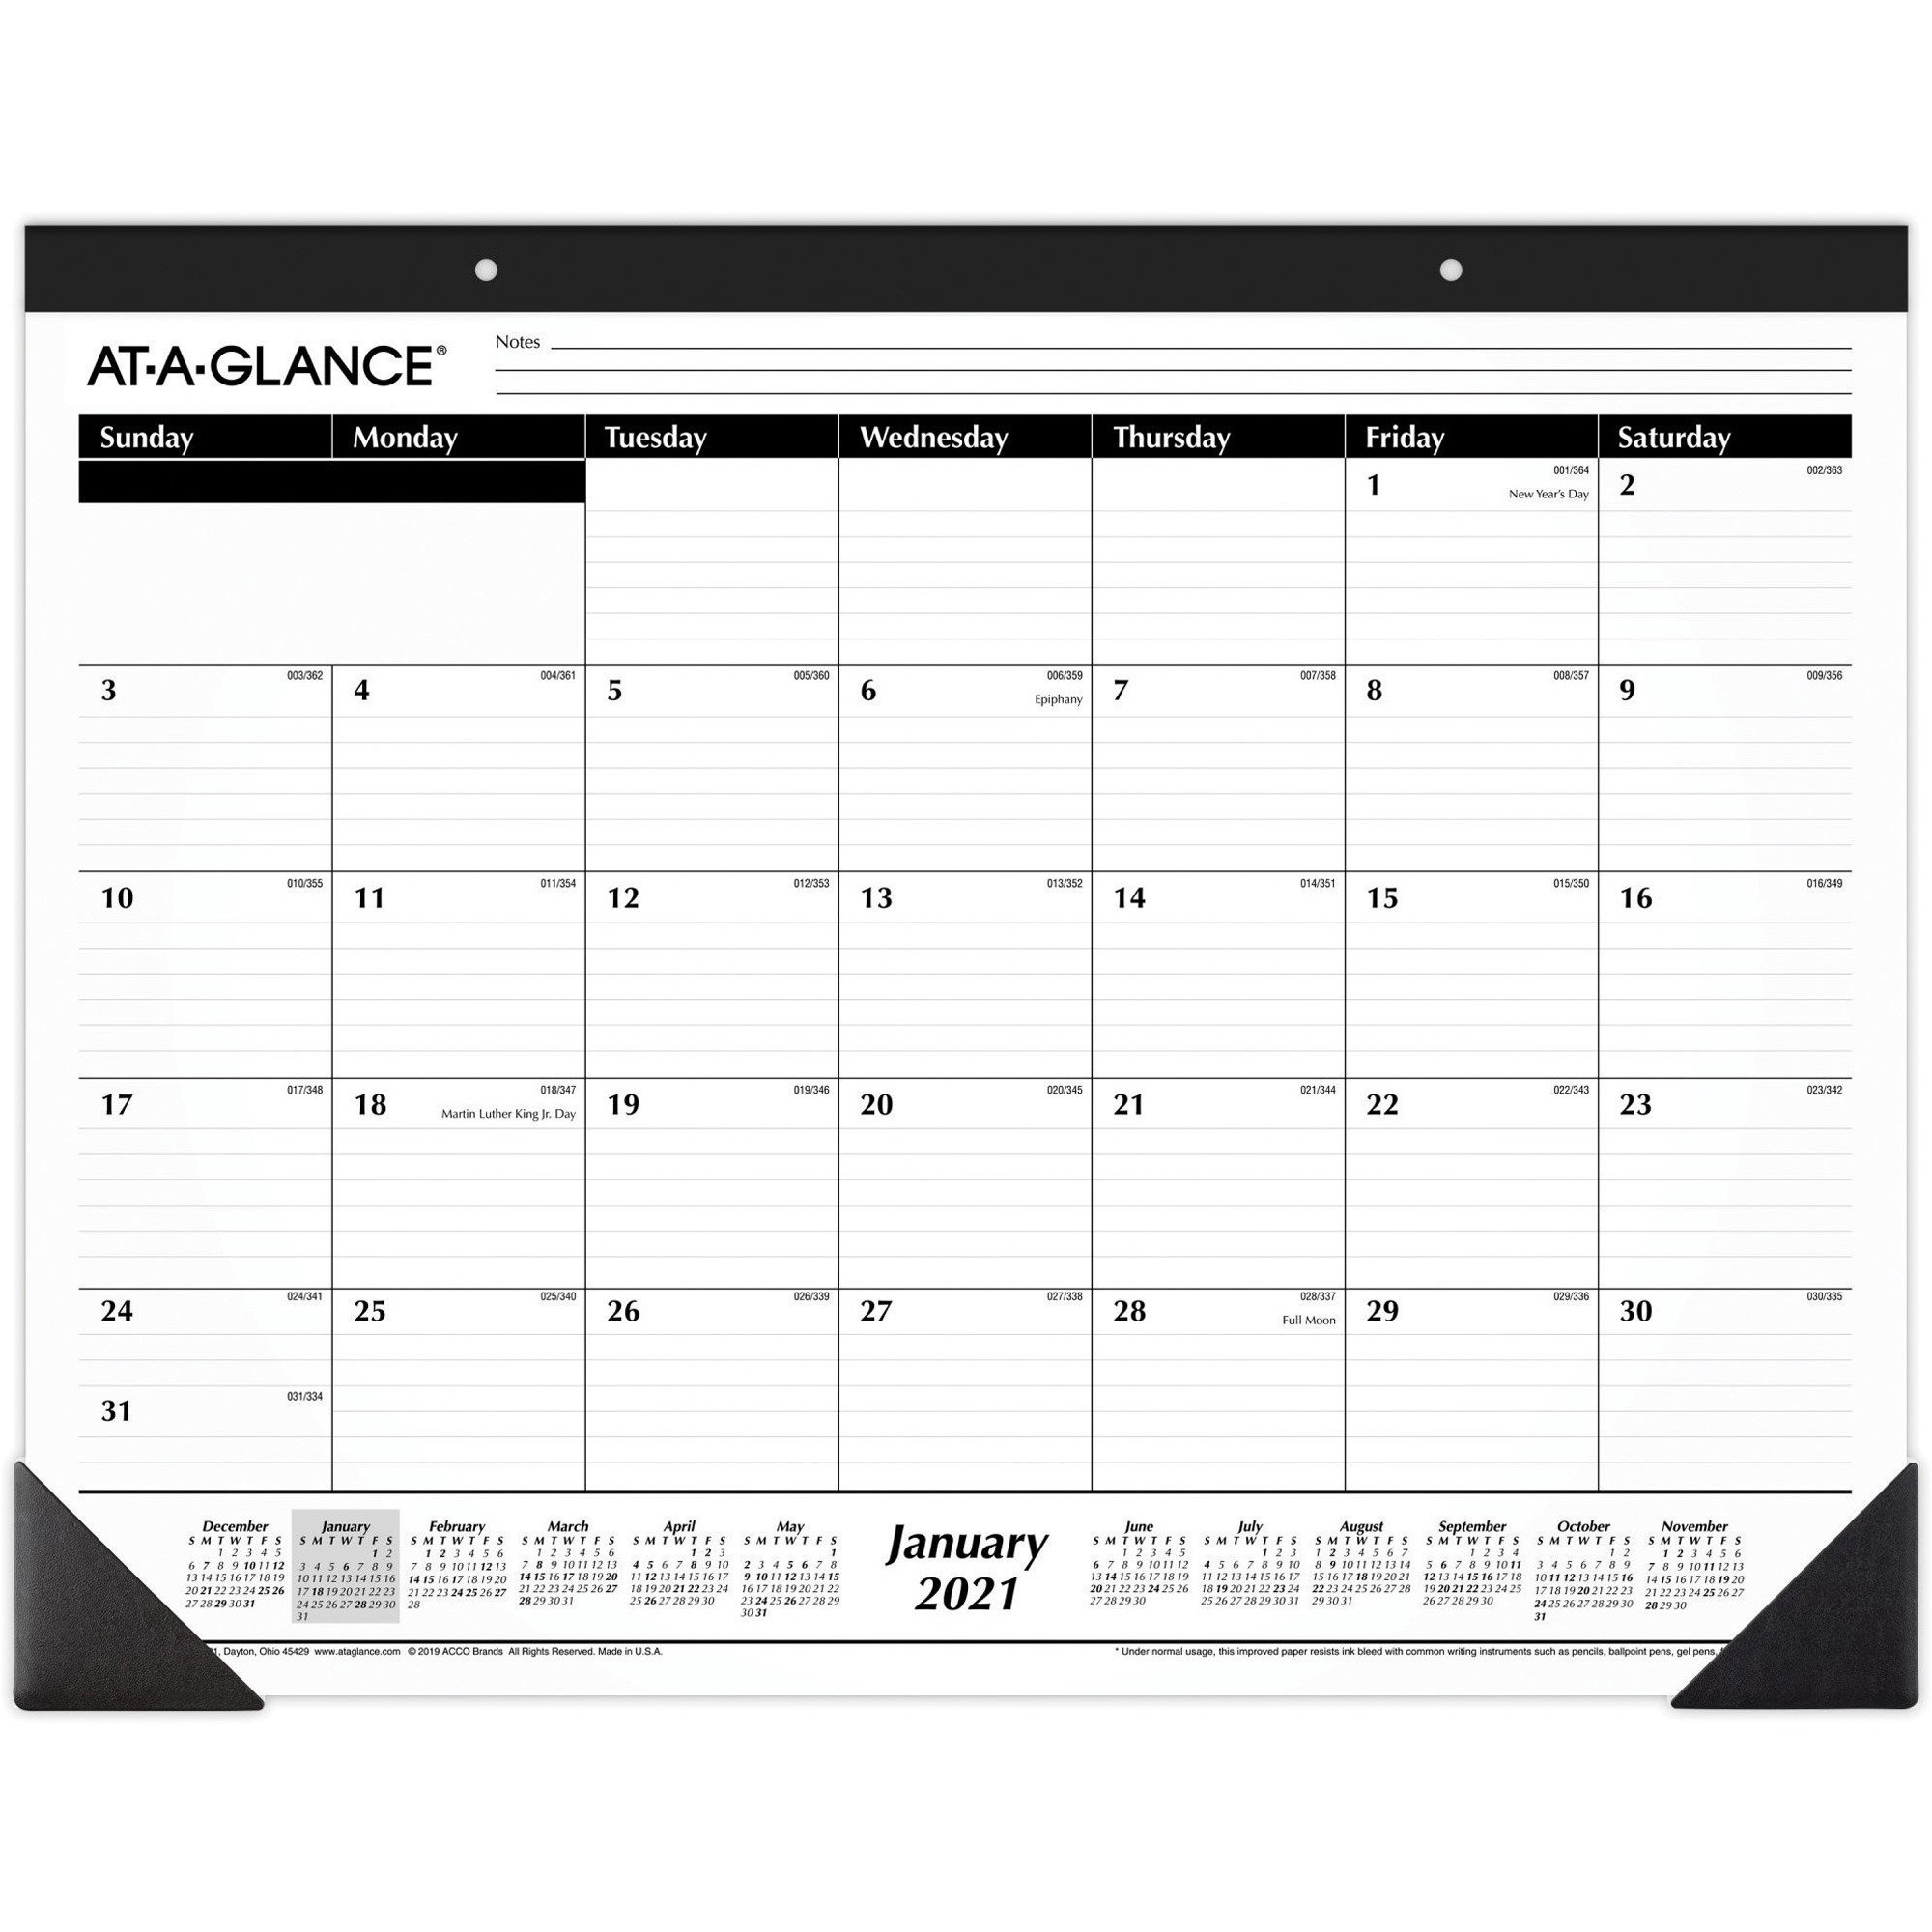 Aagsk240021 - At-A-Glance Classic Monthly Desk Pad - Julian Dates - Monthly - 1 Year - January